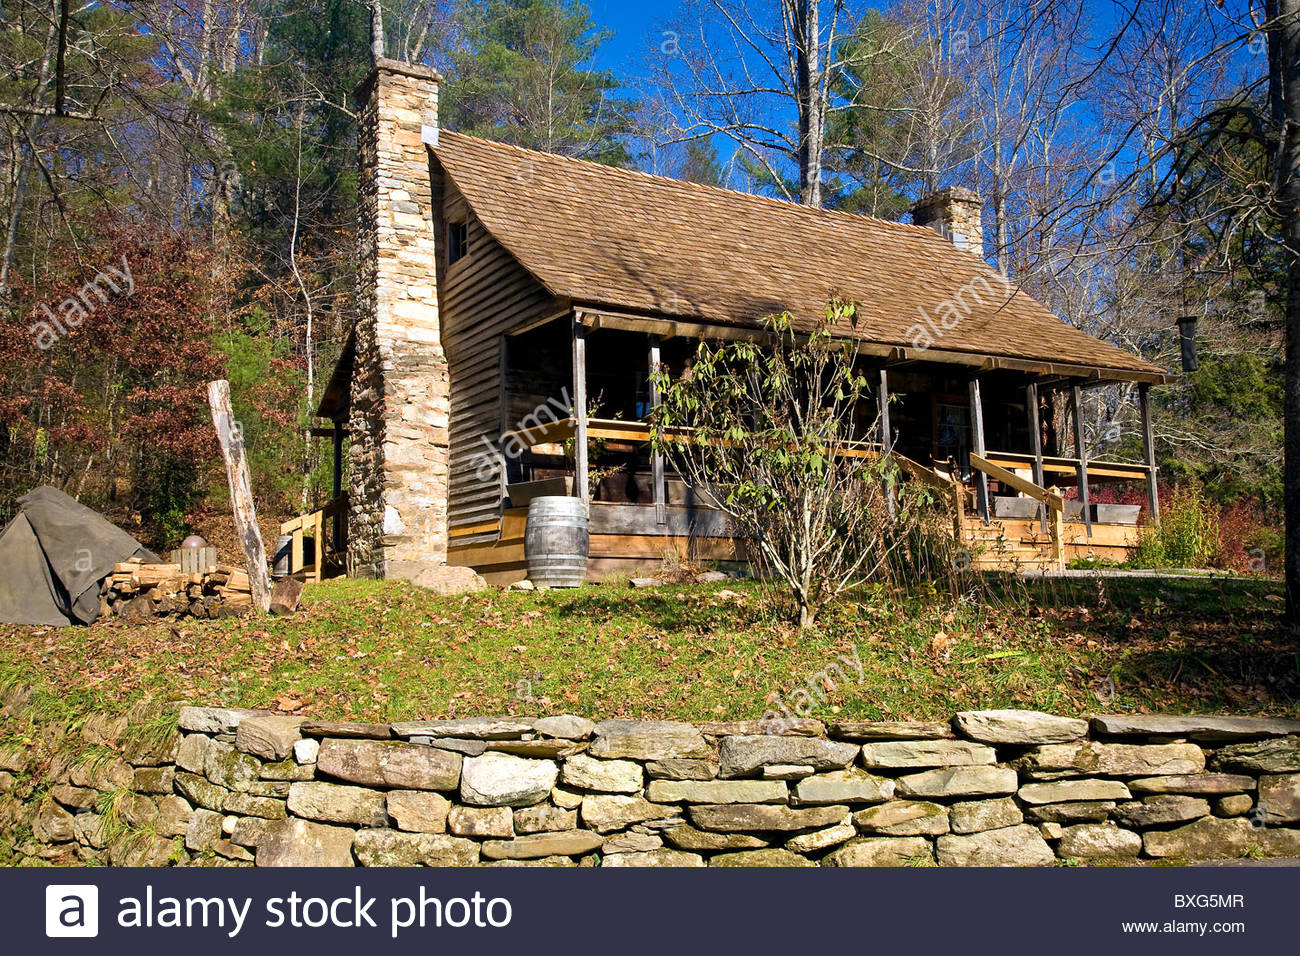 viewed range long vrbo misty fireplace deck back from cabins this secluded cozy s grandfather cabin mountain views